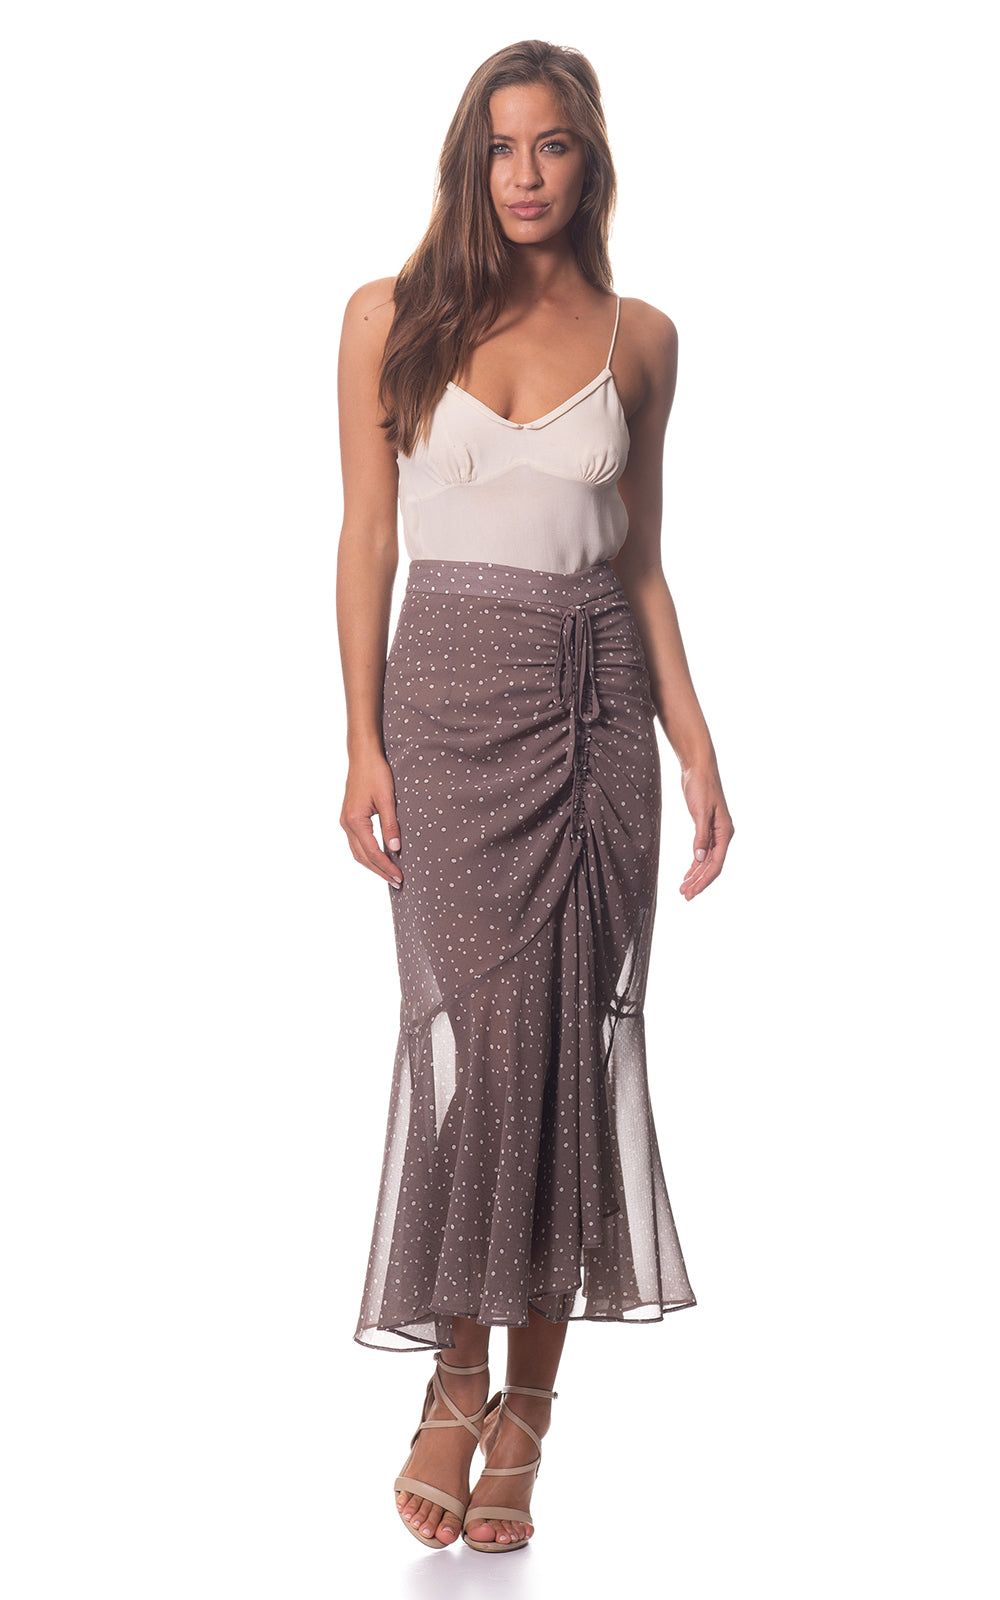 Penny Gather Fishtail Skirt in Taupe